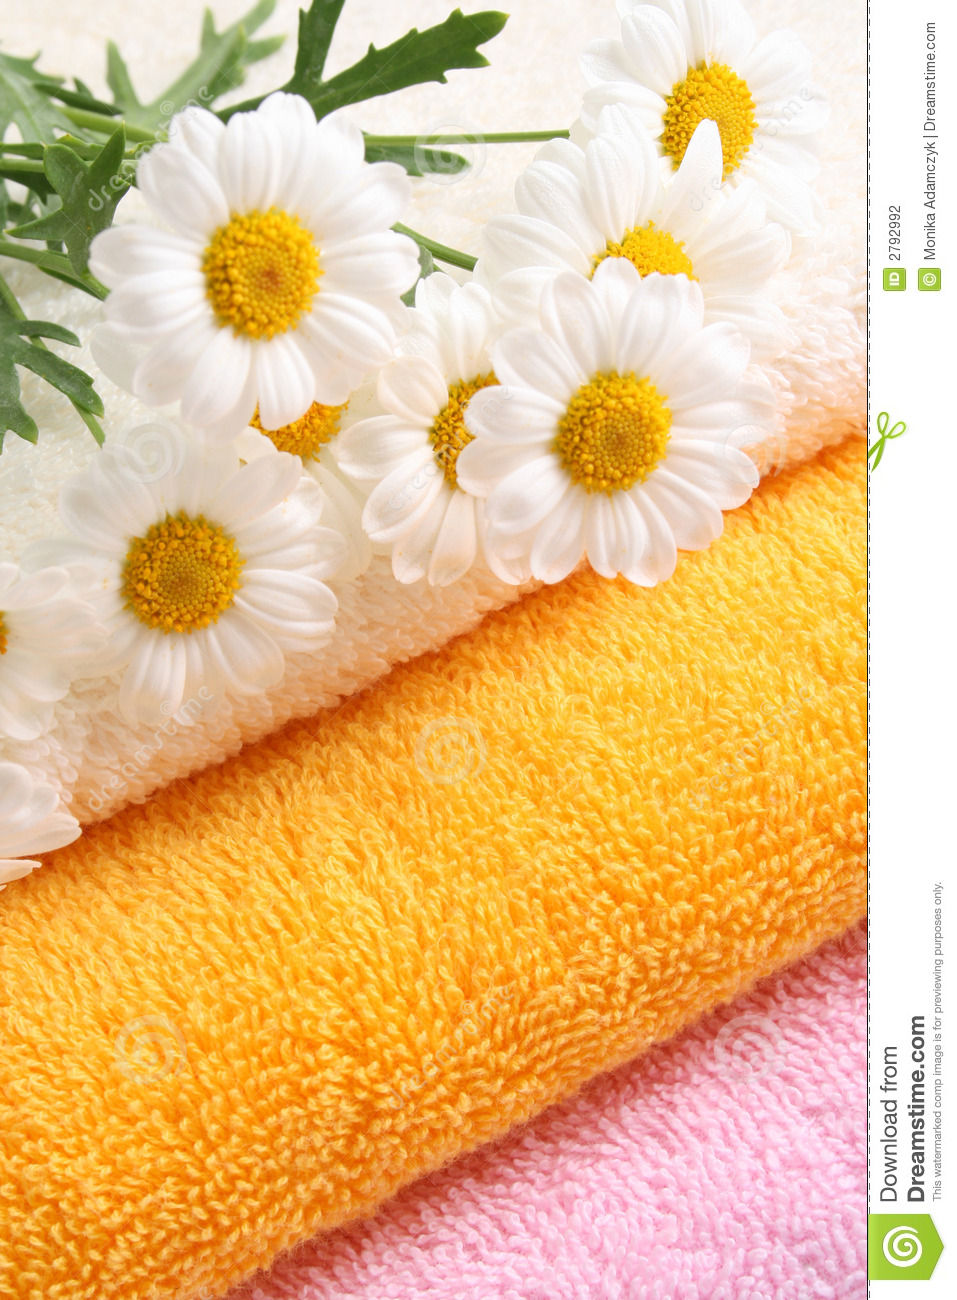 Download Towels stock photo. Image of marigolds, flowers, bath - 2792992